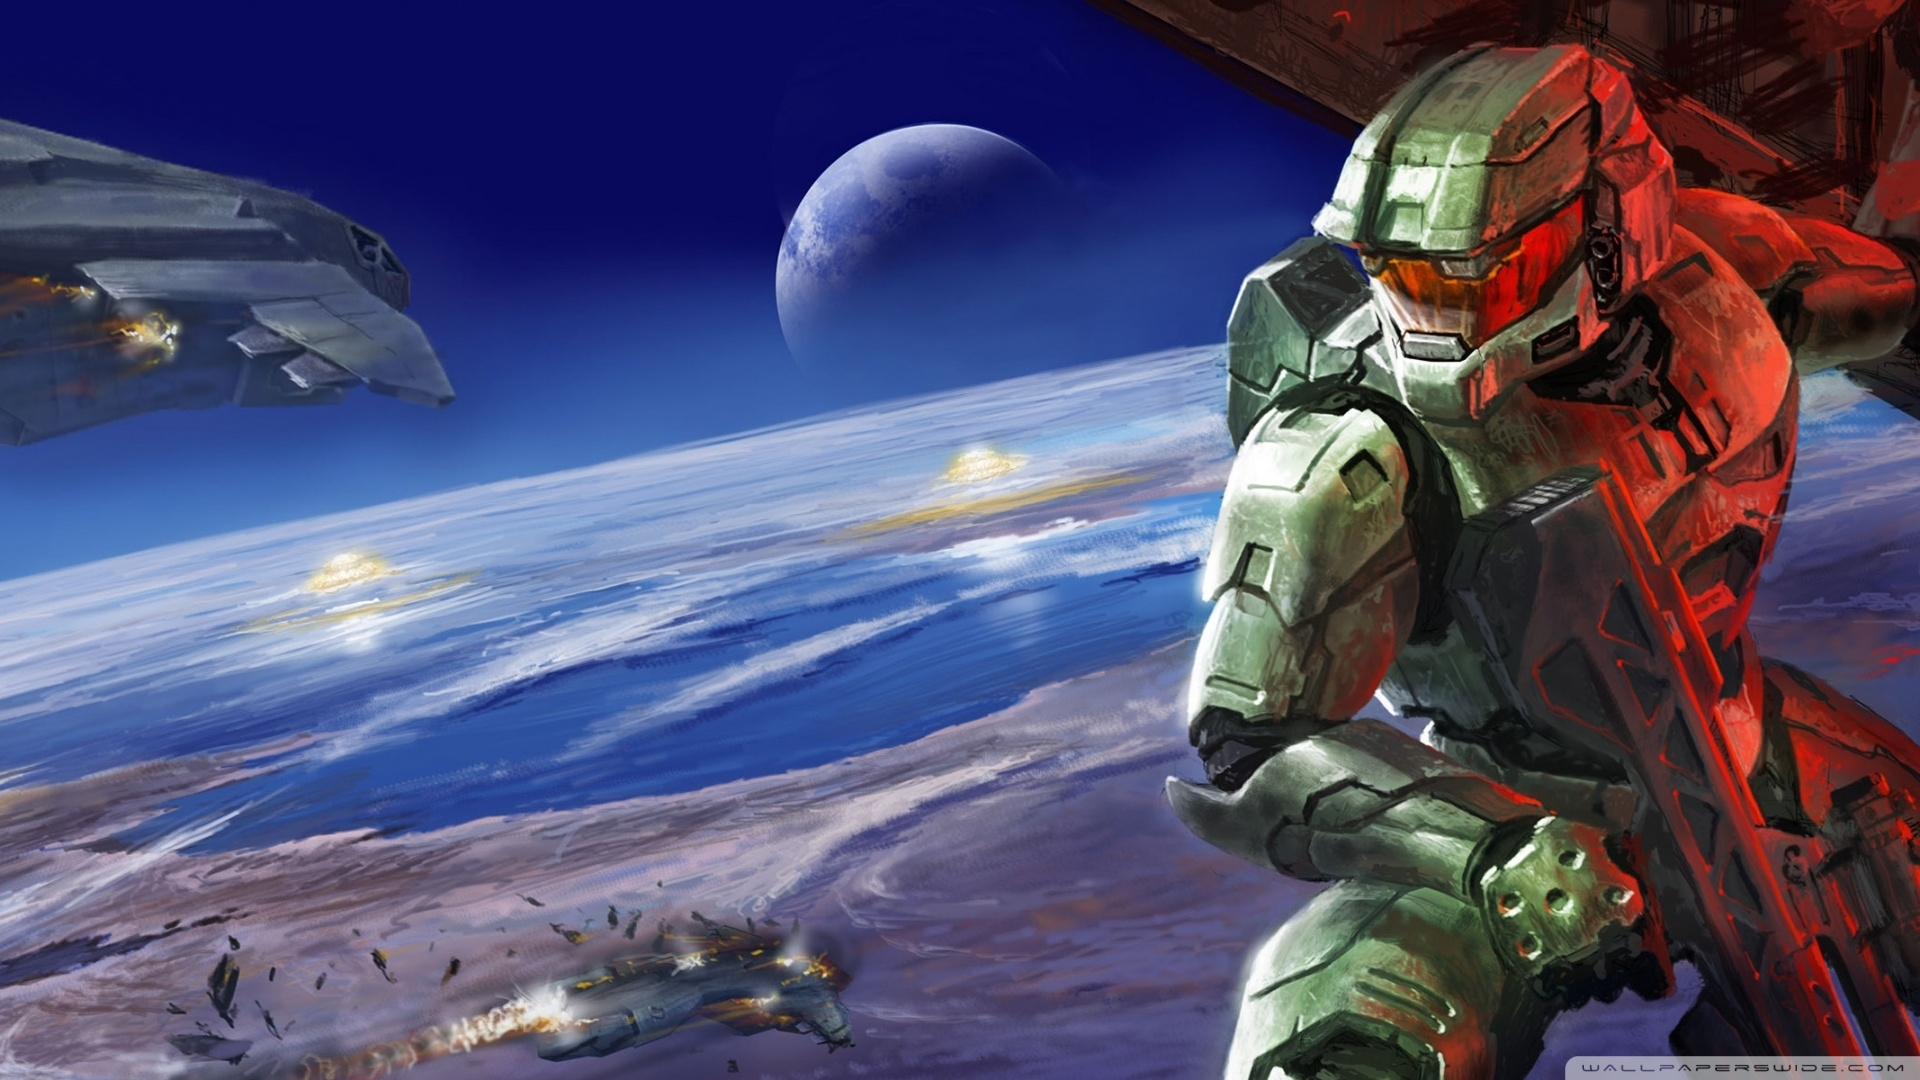 10 New 1920X1080 Wallpaper Gaming Halo FULL HD 1920×1080 For PC Background